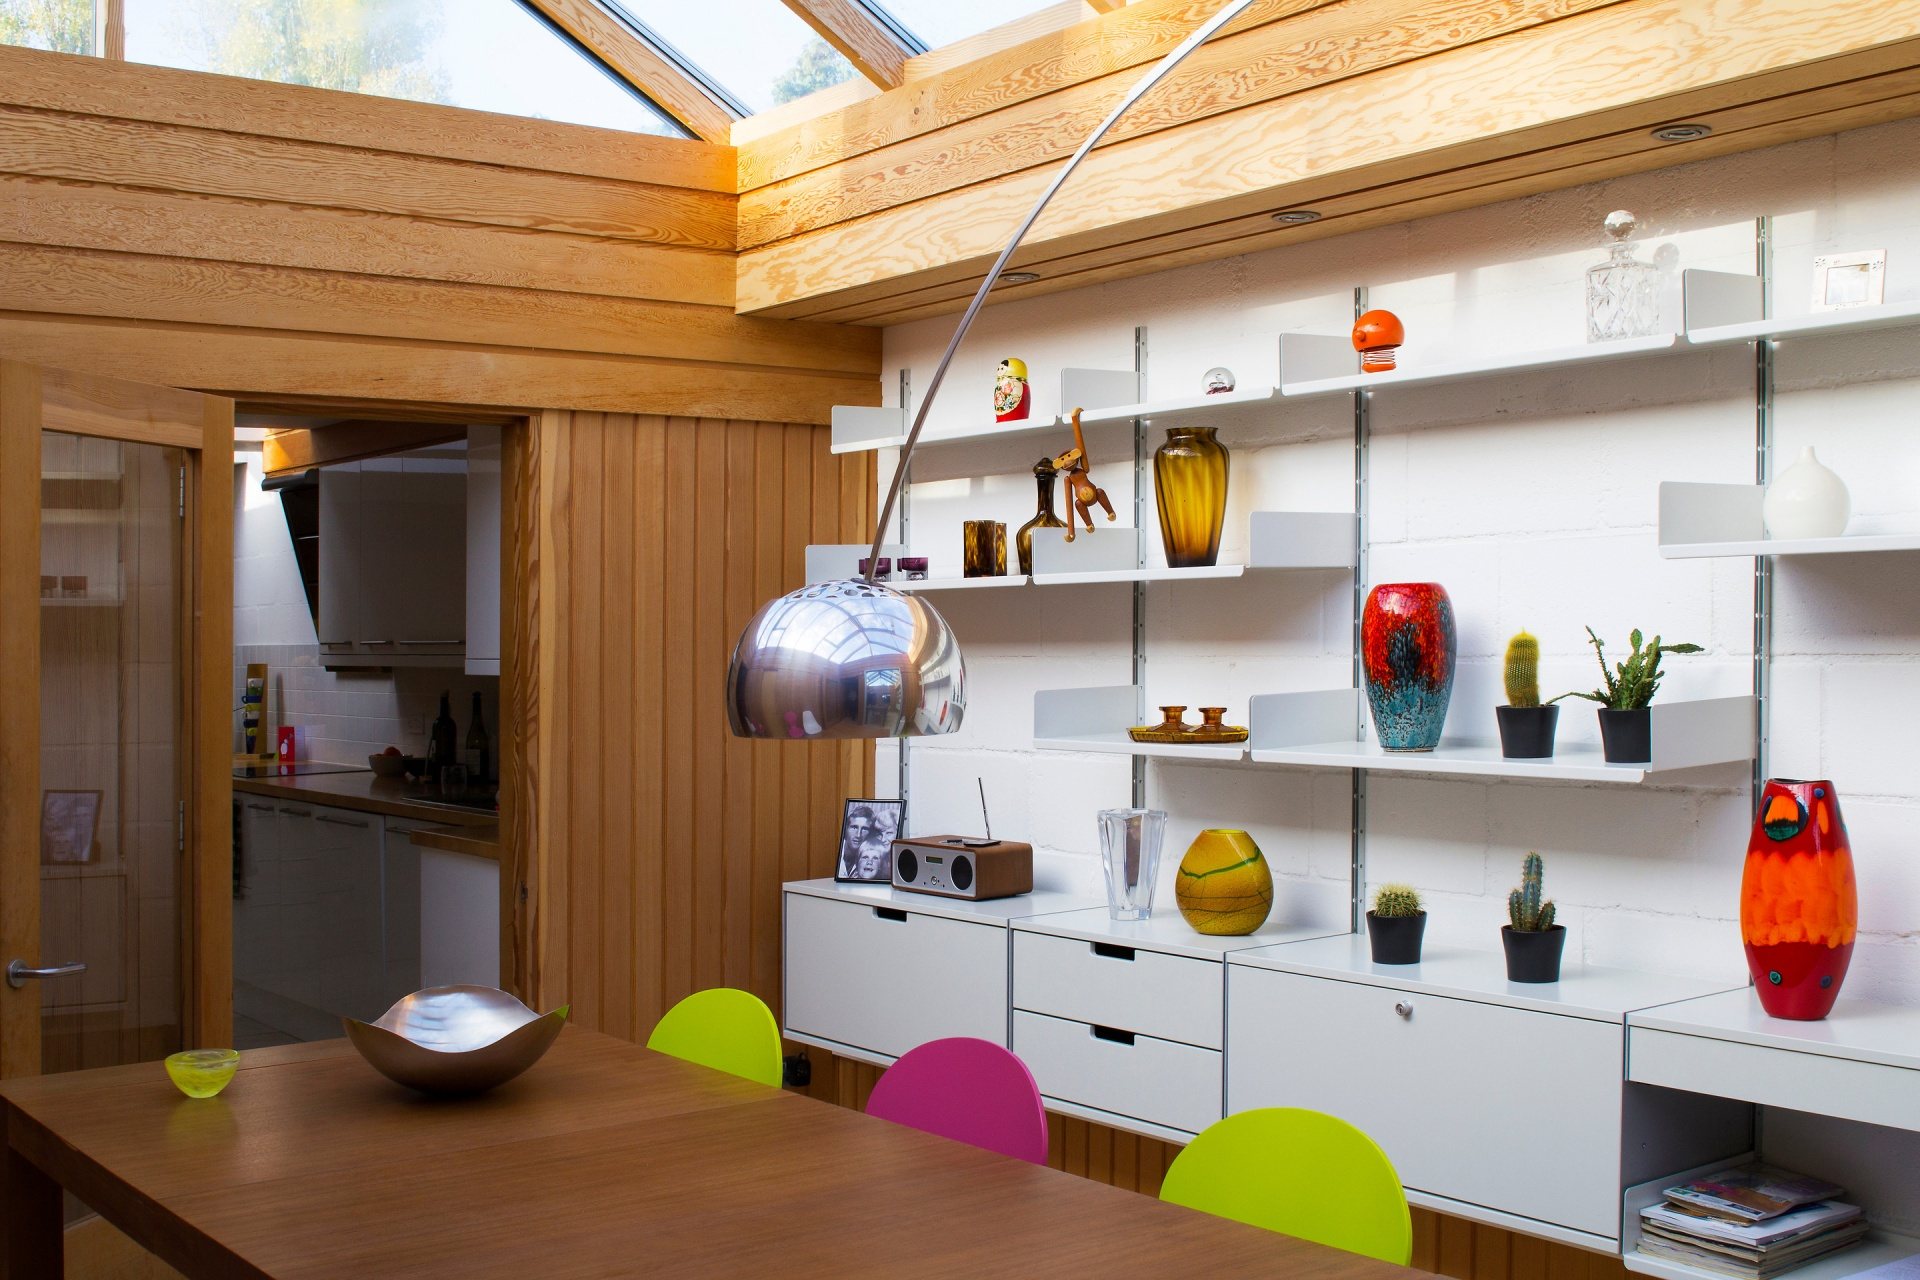 Rams, the Castiglionis, Hansen, Bojesen et al hang out in this colourful kitchen.